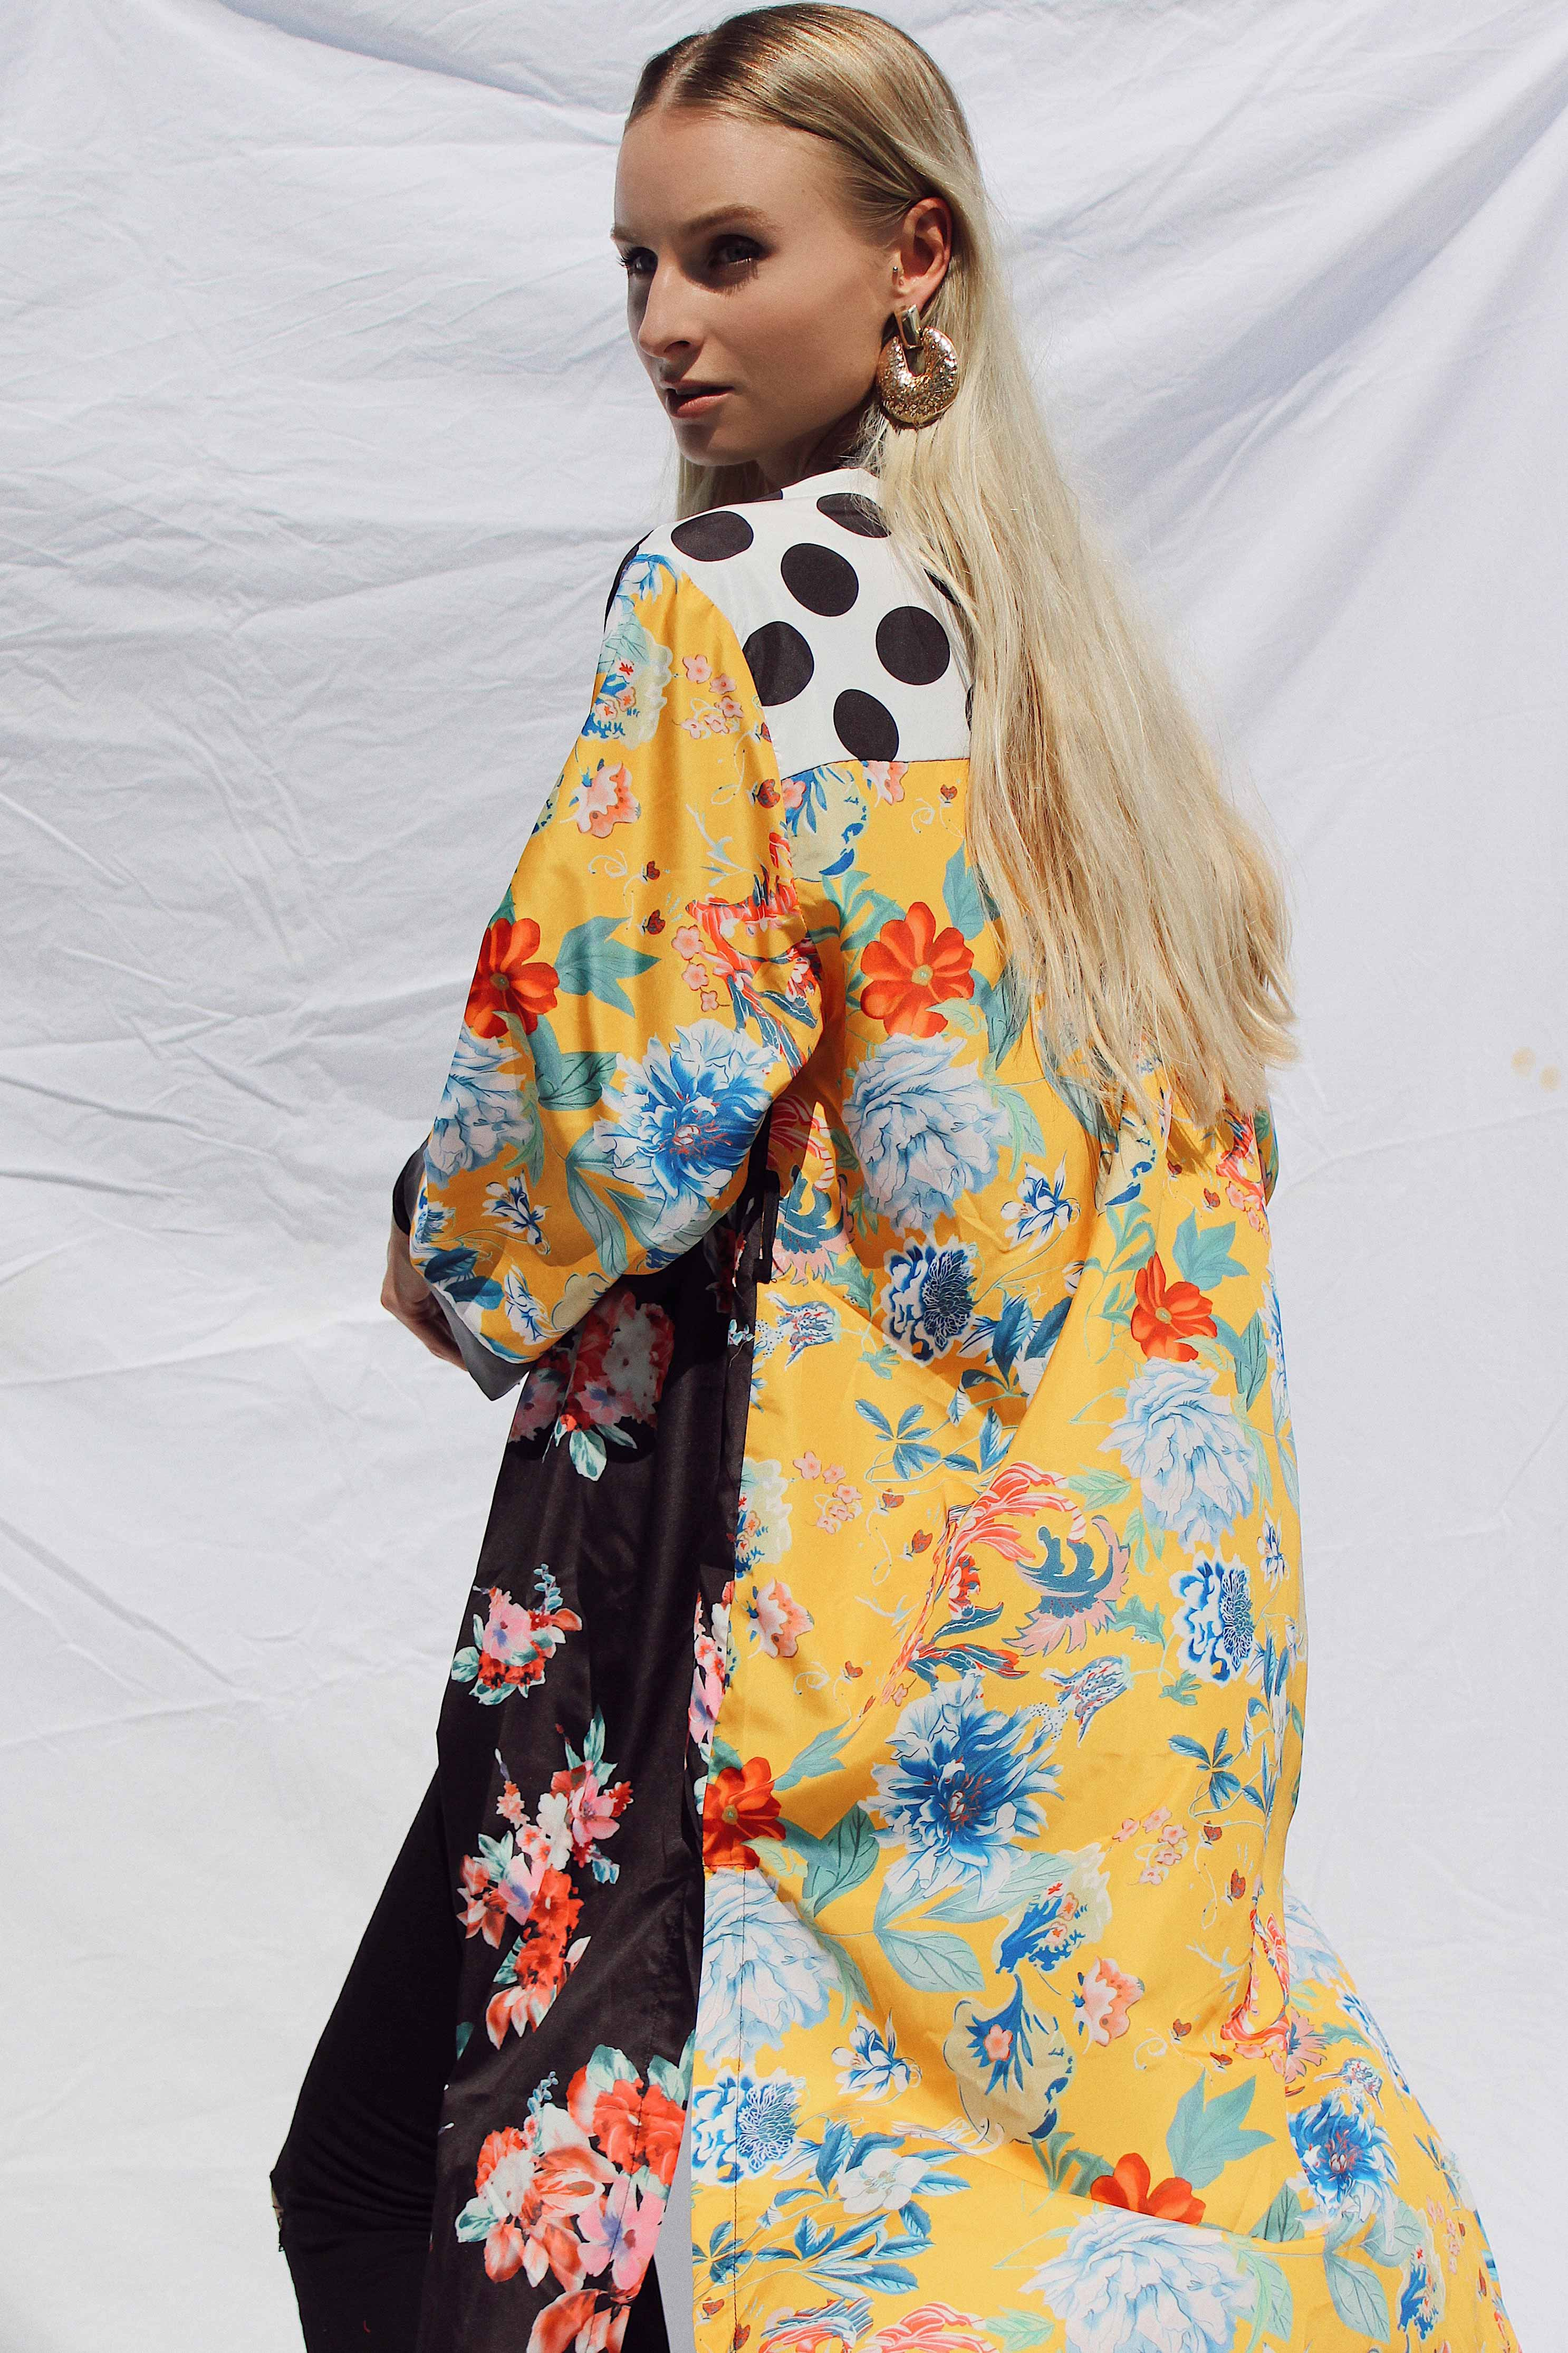 FLORAL PRINTED KIMONO | Women's Online Shopping | CHICLEFRIQUE  (2095893119065)